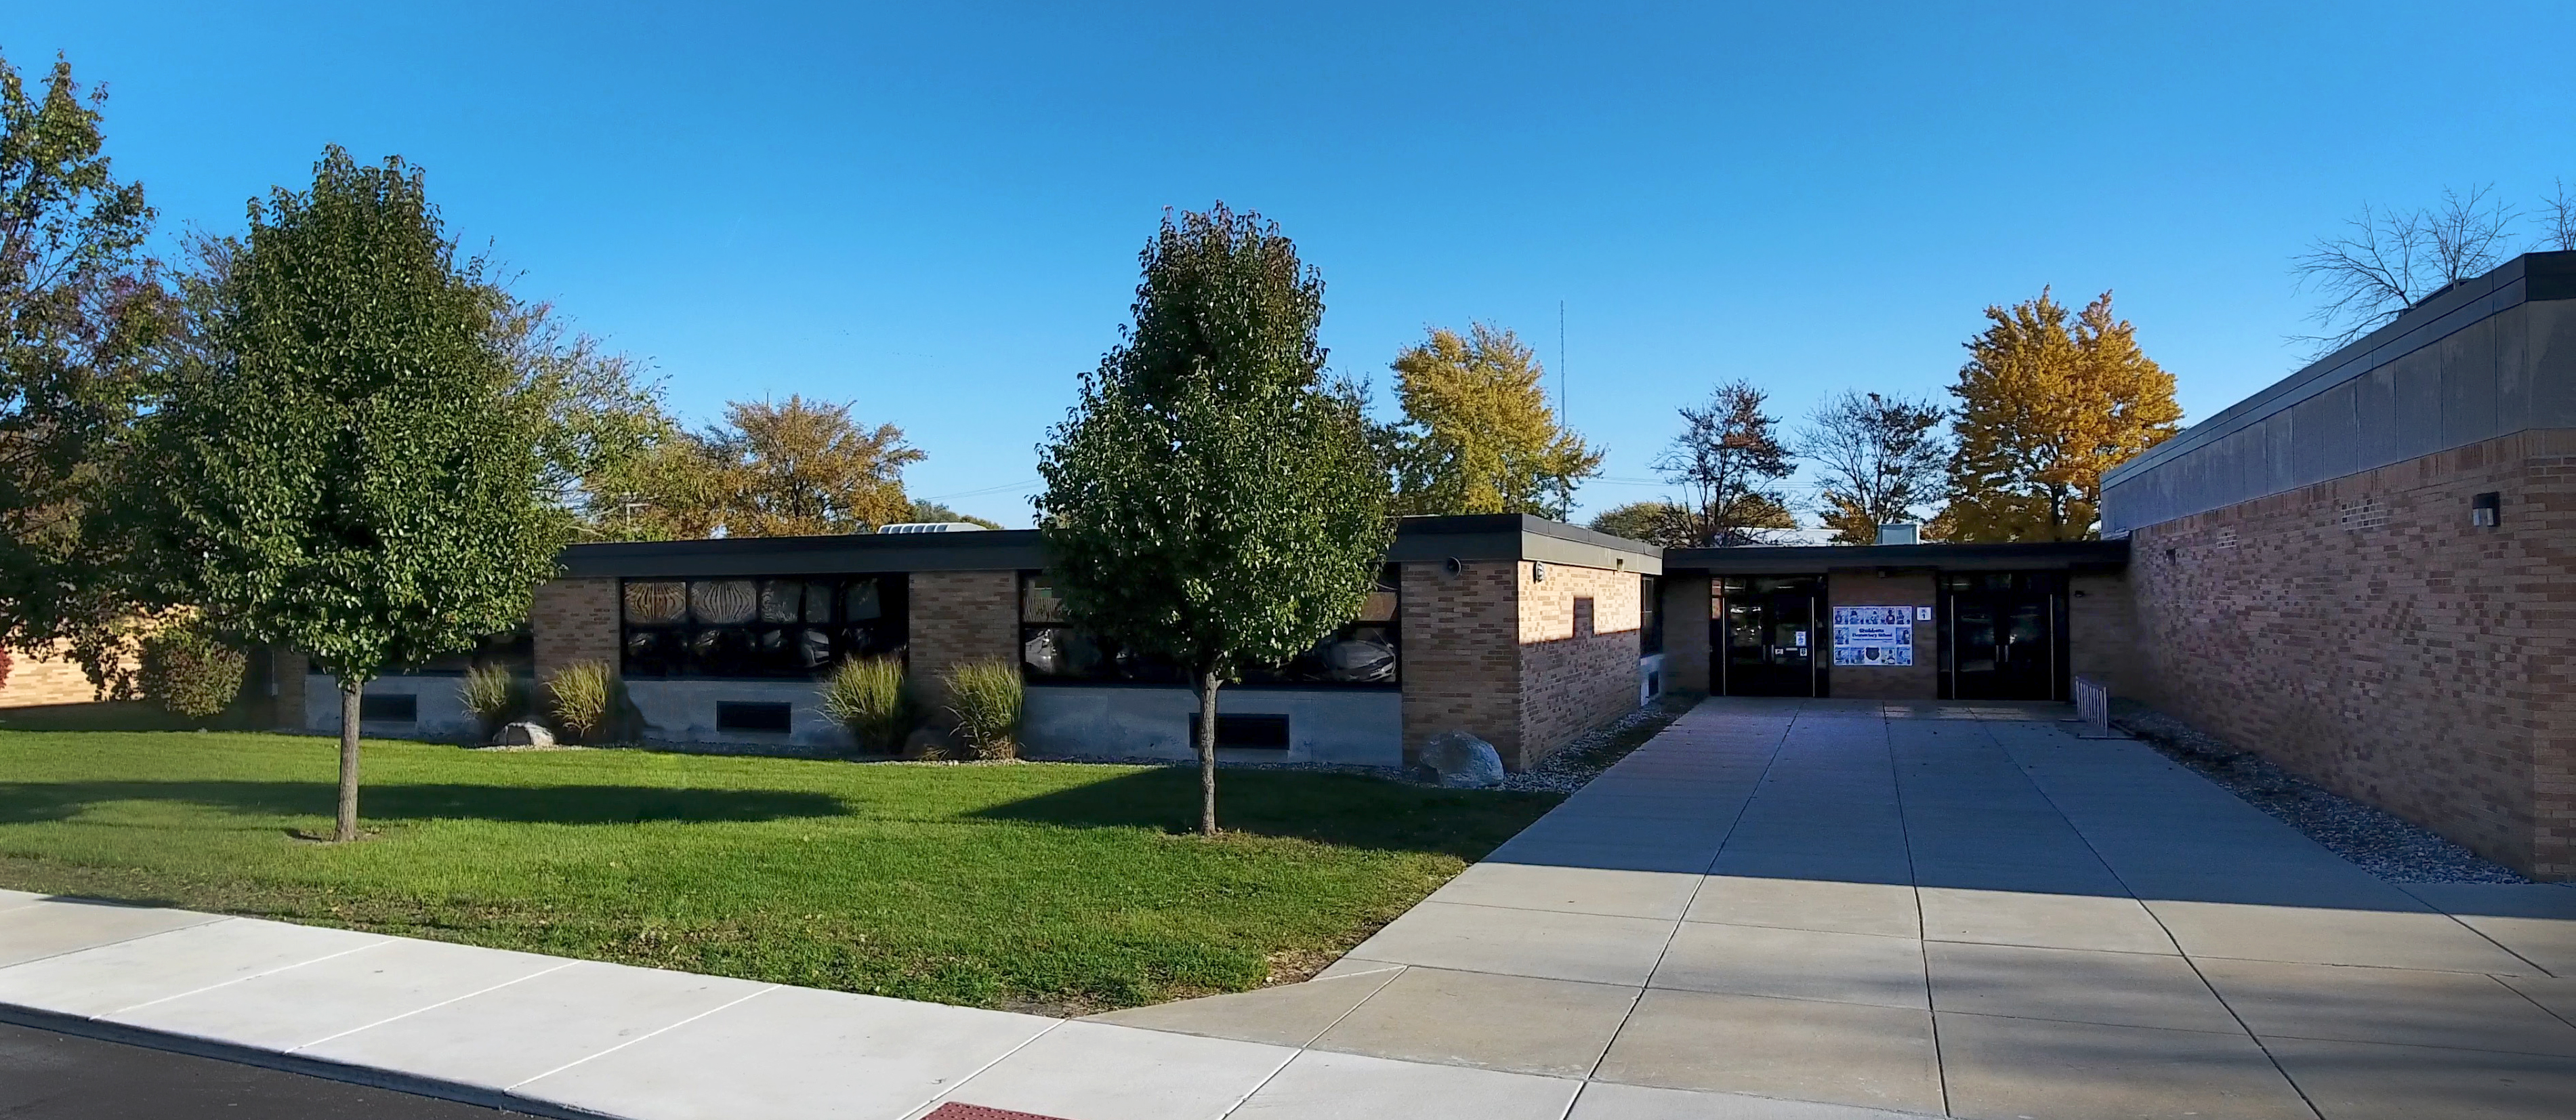 Image of Shabbona Elementary School